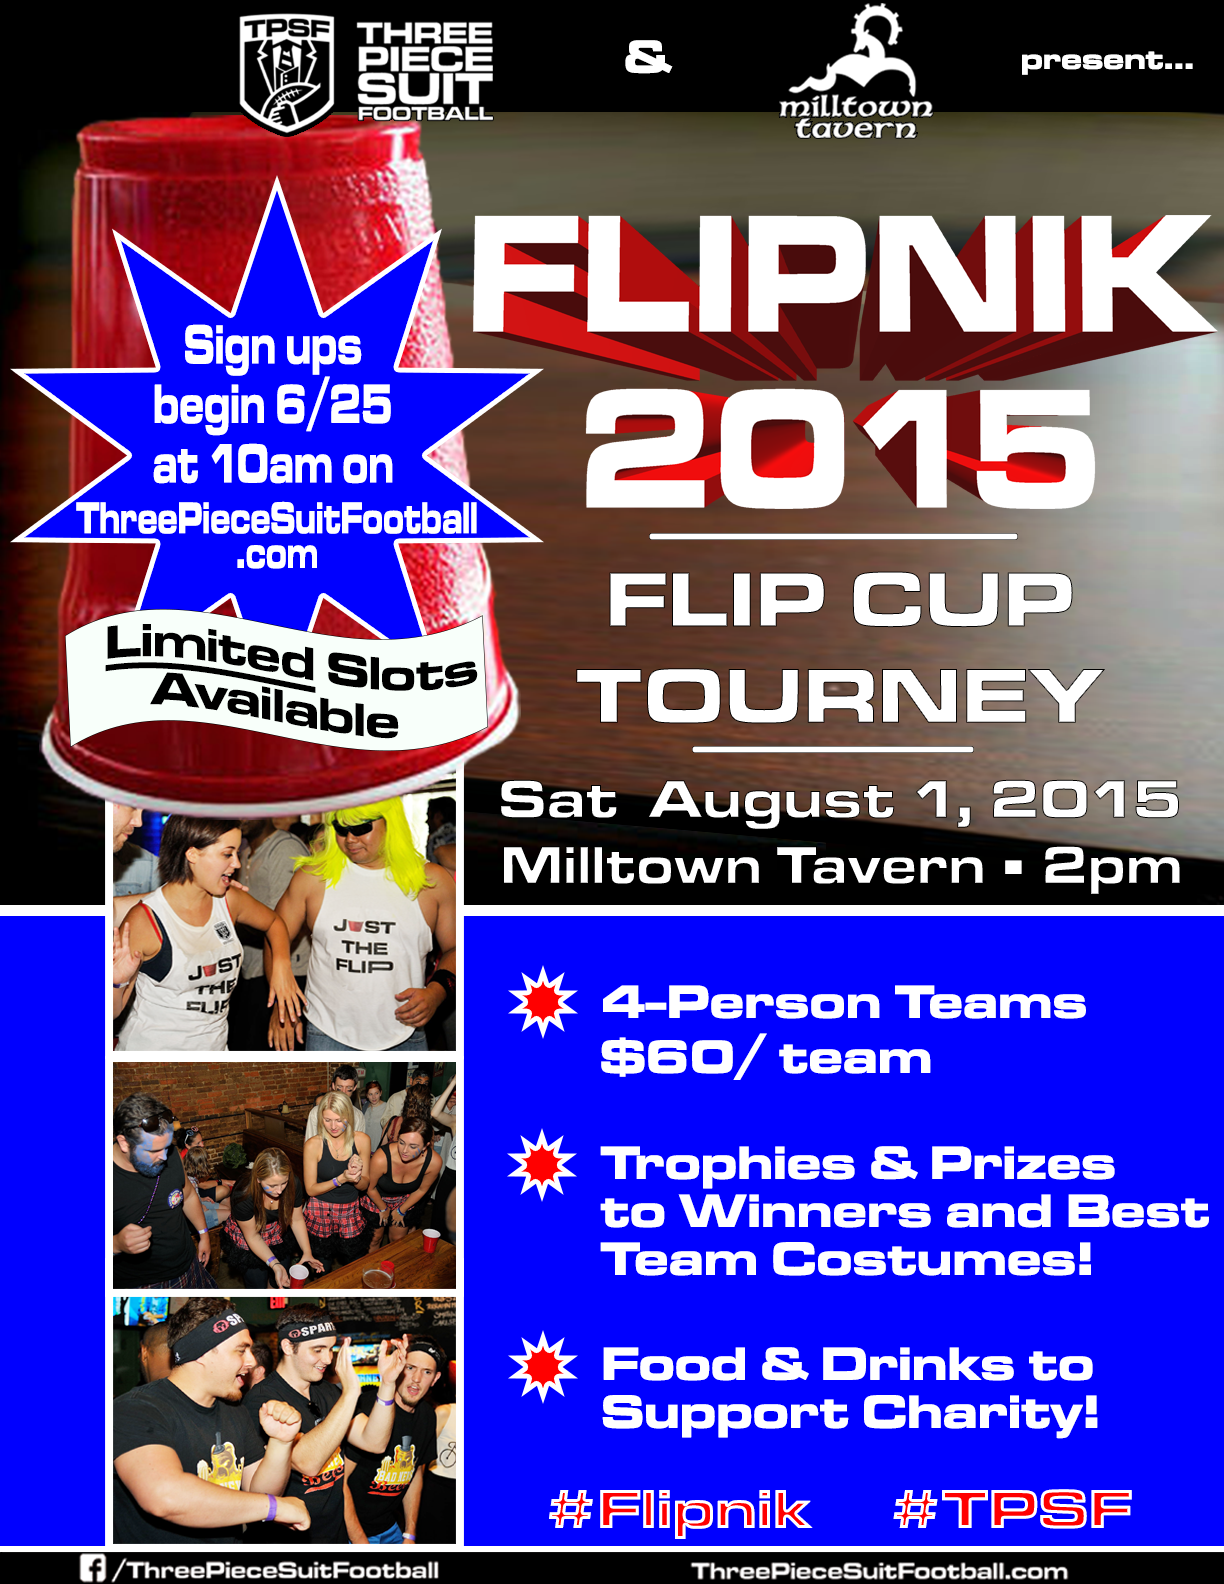 Flipnik 2015 official flyer_Draft 6.15